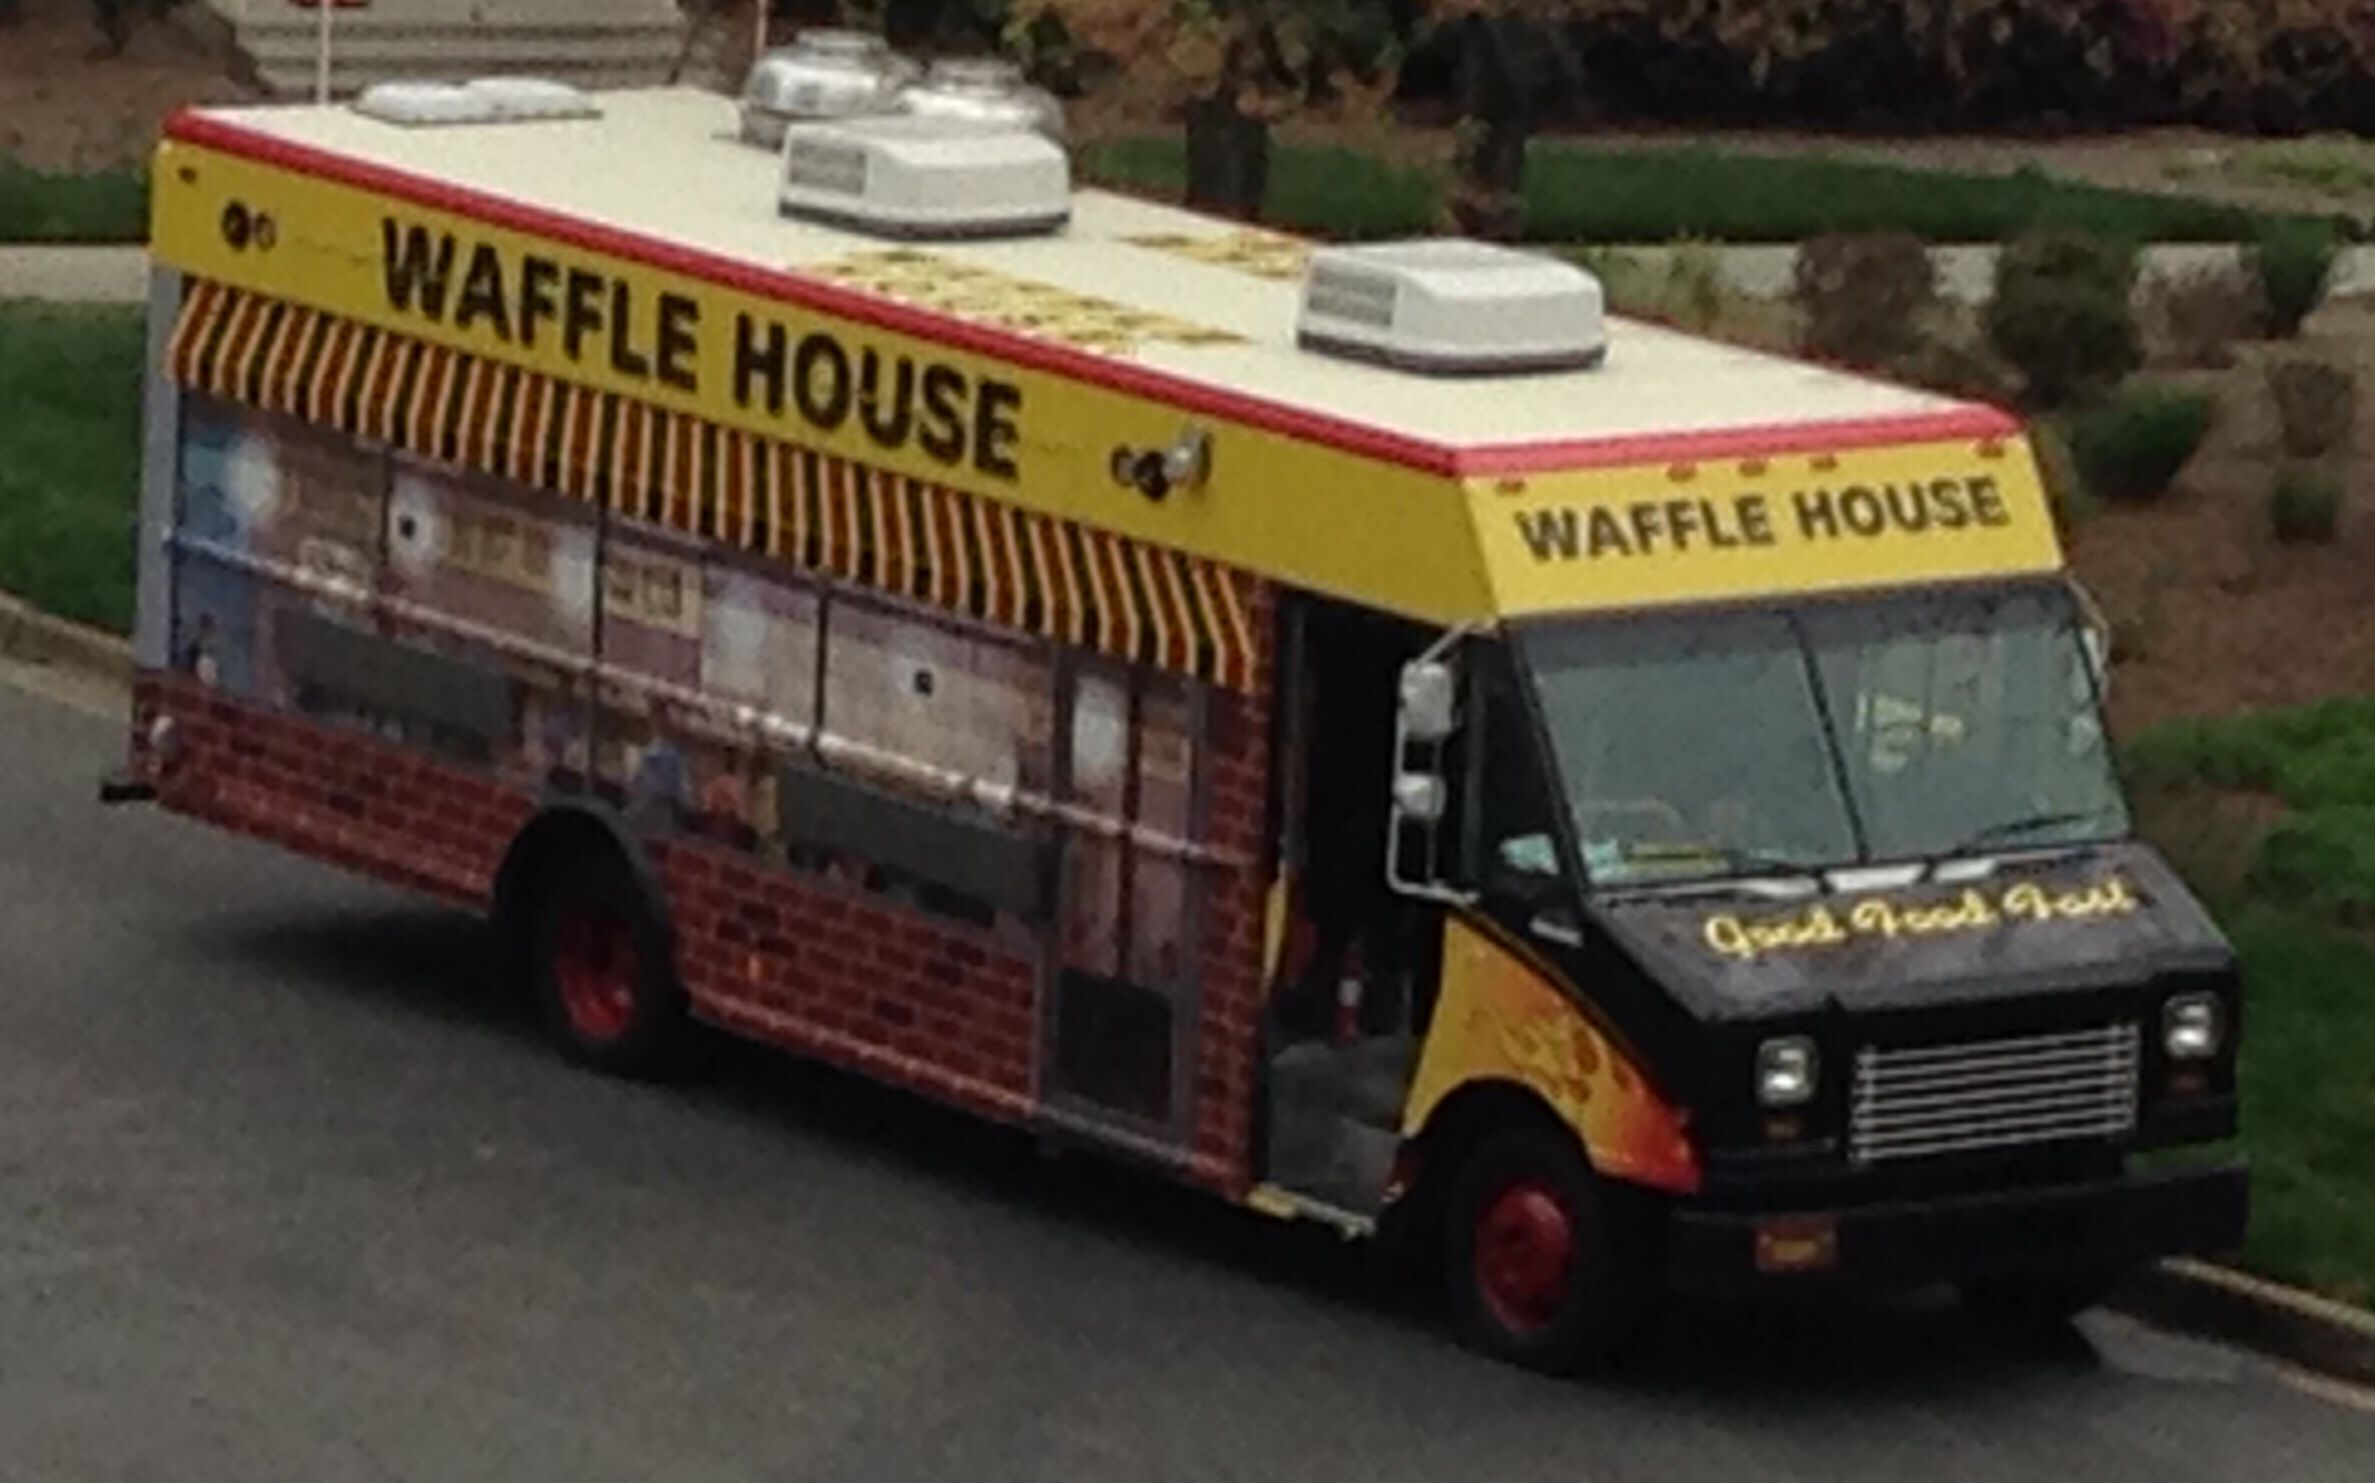 Waffle House Food Truck Restaurants Pinterest Restaurant